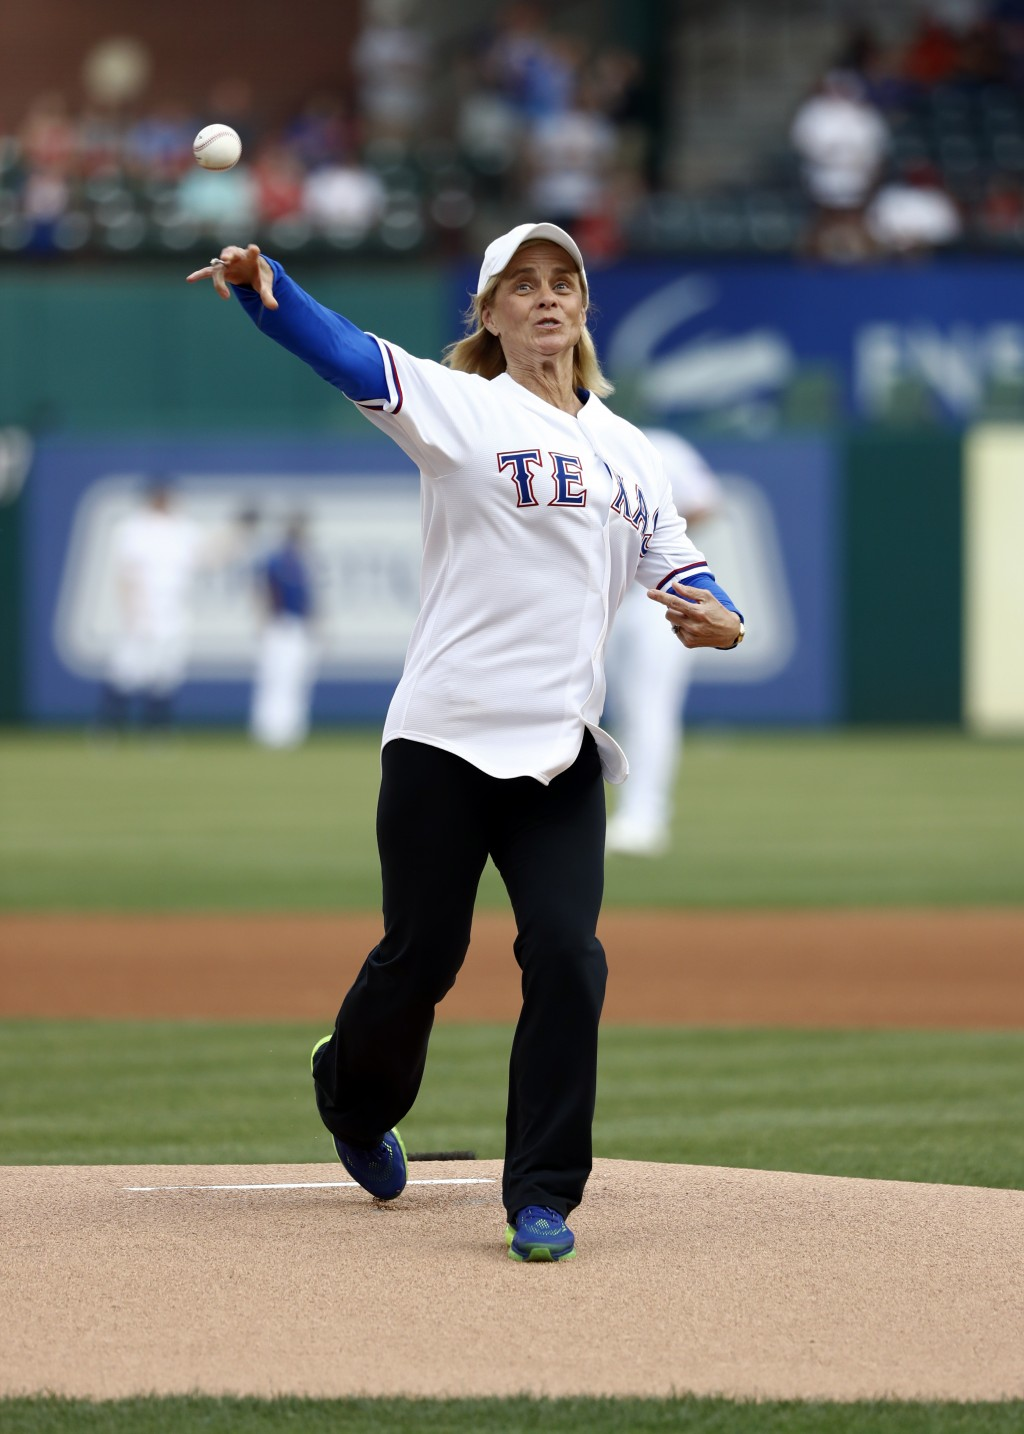 Baylor women's basketball head coach Kim Mulkey throws out the ceremonial first pitch before a baseball game between the St. Louis Cardinals and the T